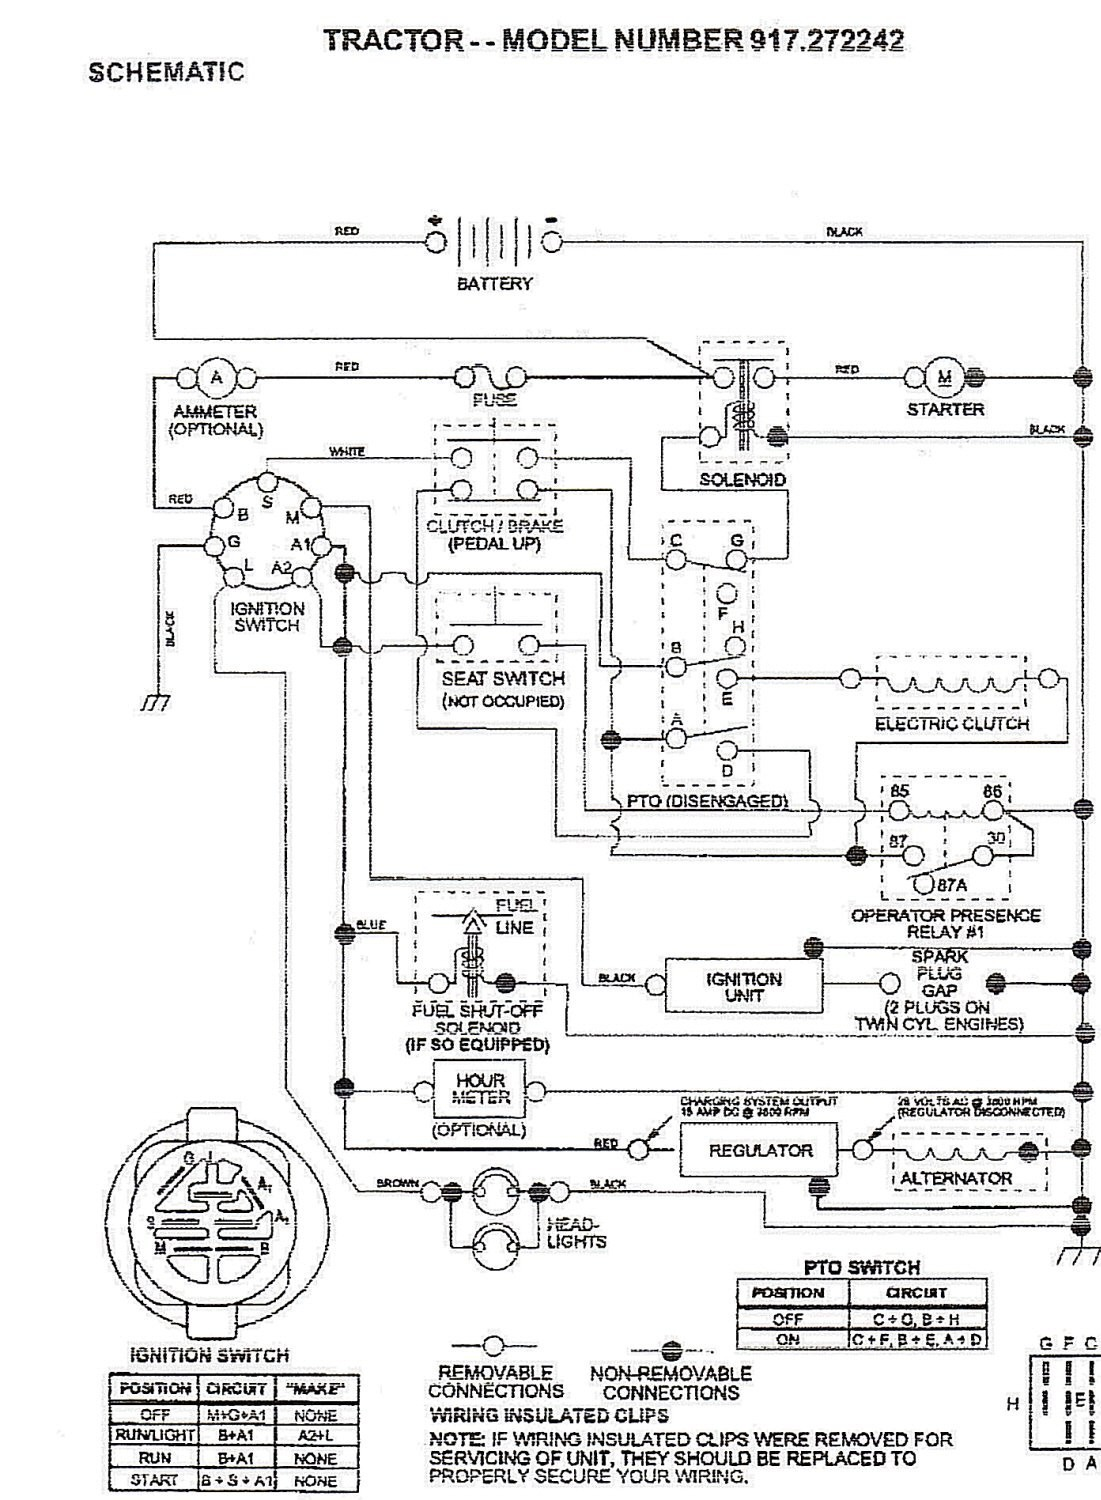 hight resolution of 20 hp briggs and stratton wiring diagram wiring diagrams briggs and stratton intek 344 wiring diagram